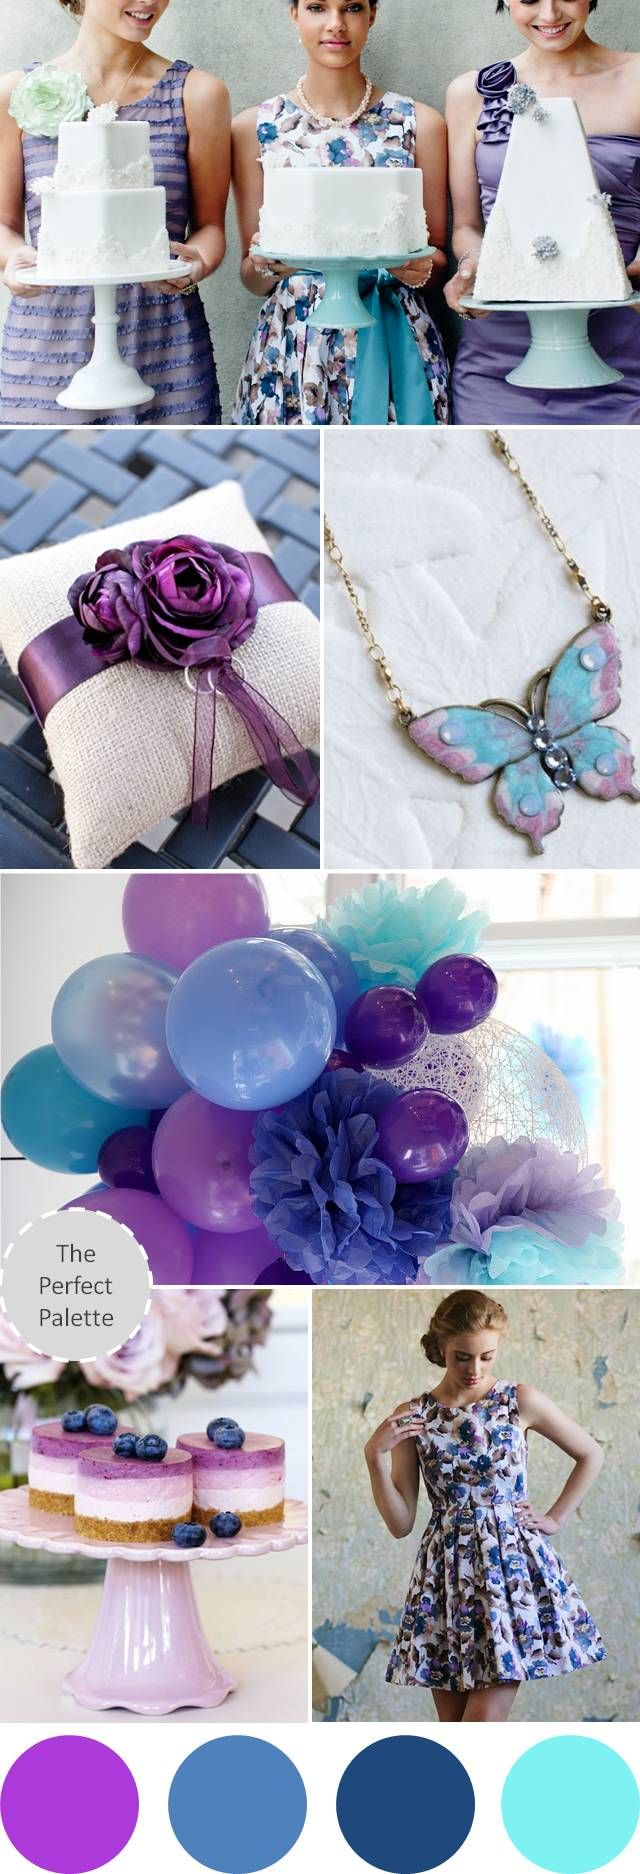 {Wedding Colors I Love}: Something Blue! And Purple too! http://www.theperfectpalette.com/2012/11/wedding-colors-i-love-something-blue.html